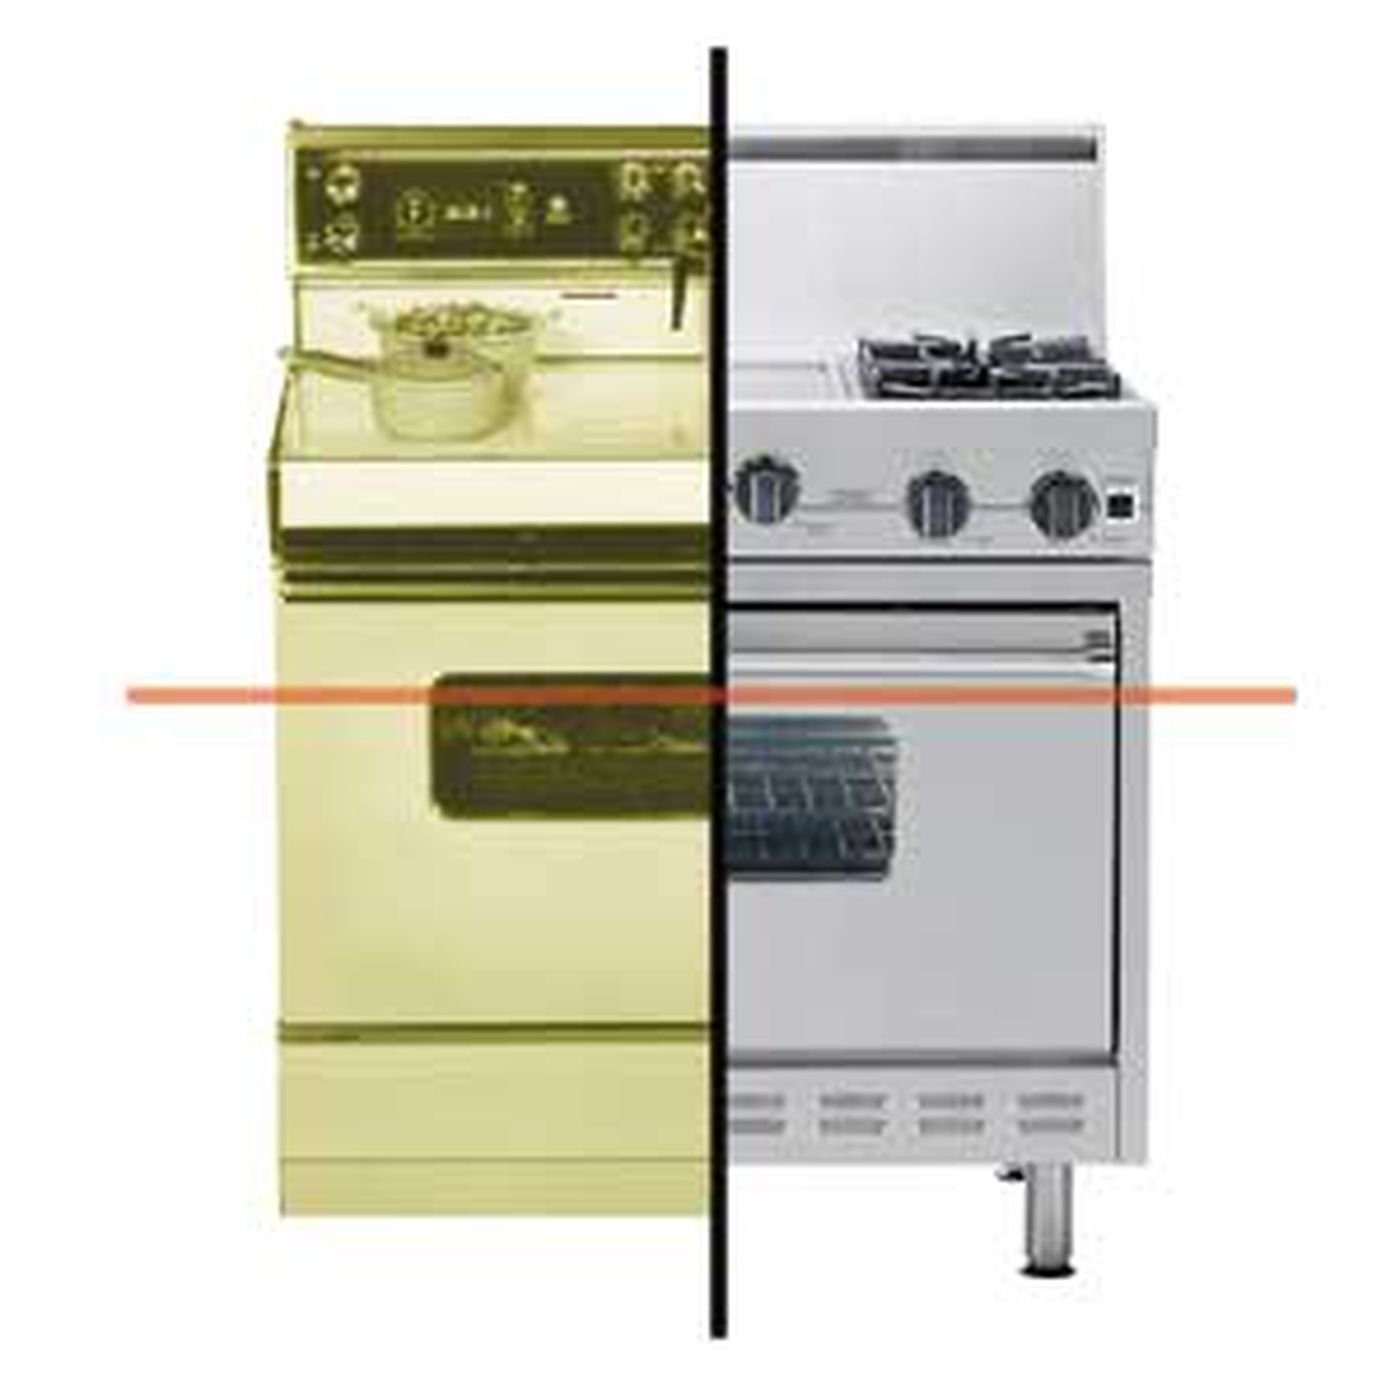 innovation stoves cooktops and ovens